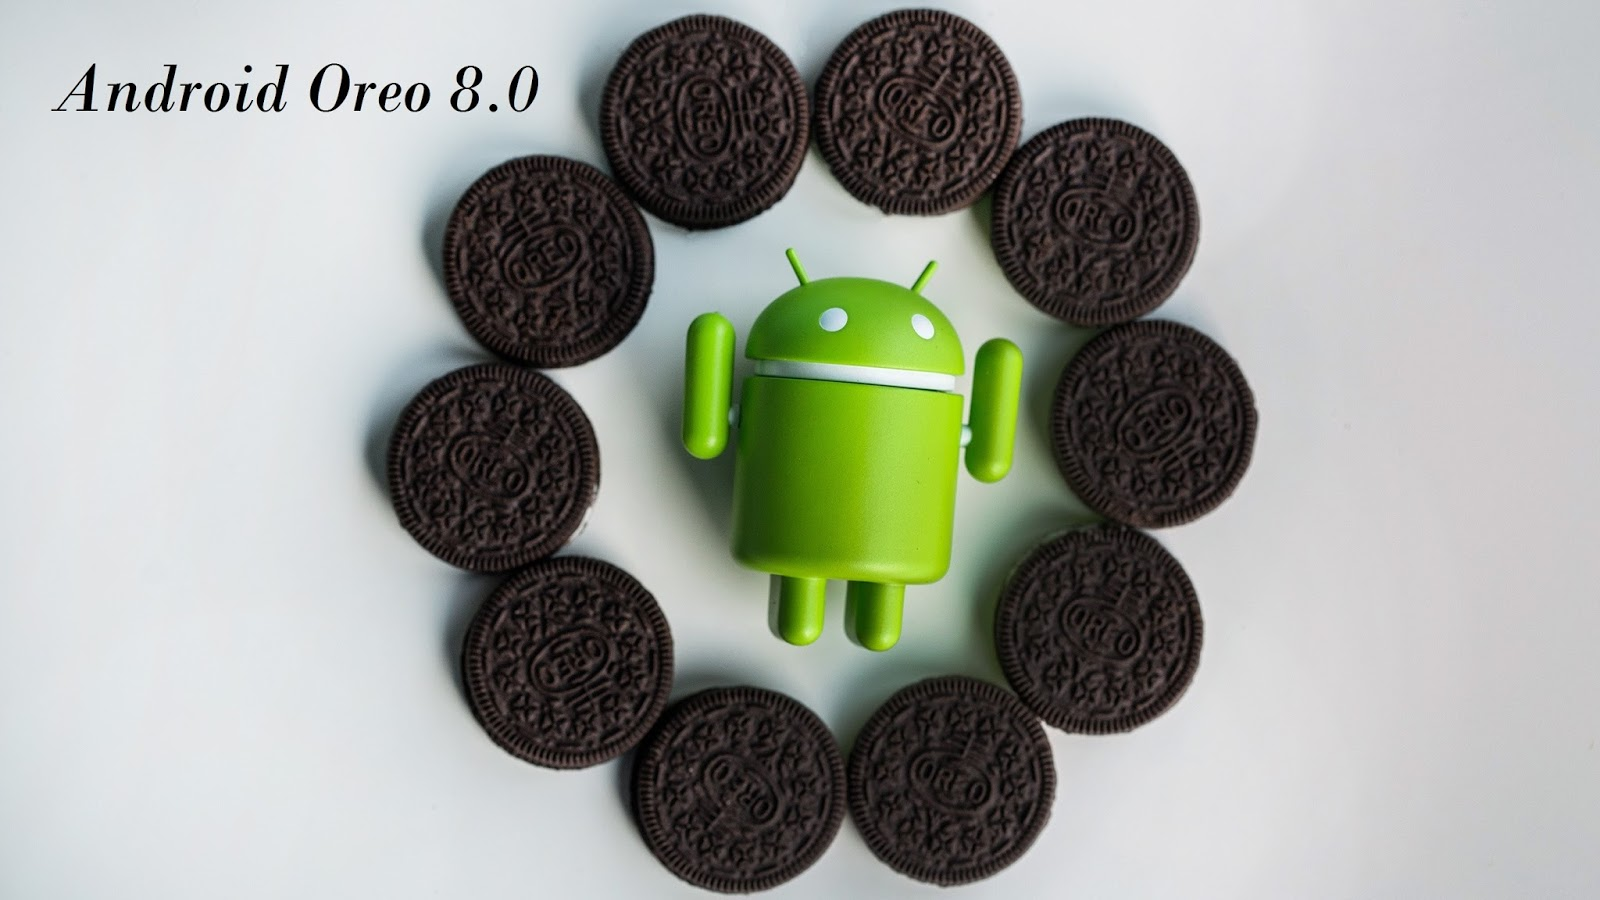 Google leak may have just confirmed Google #Android #Oreo 8.0 leaks  Click to read: https://goo.gl/3m7pWU  #tech, #technology, #techNews #latestTech #AndroidO8.0 #AndroidOreo